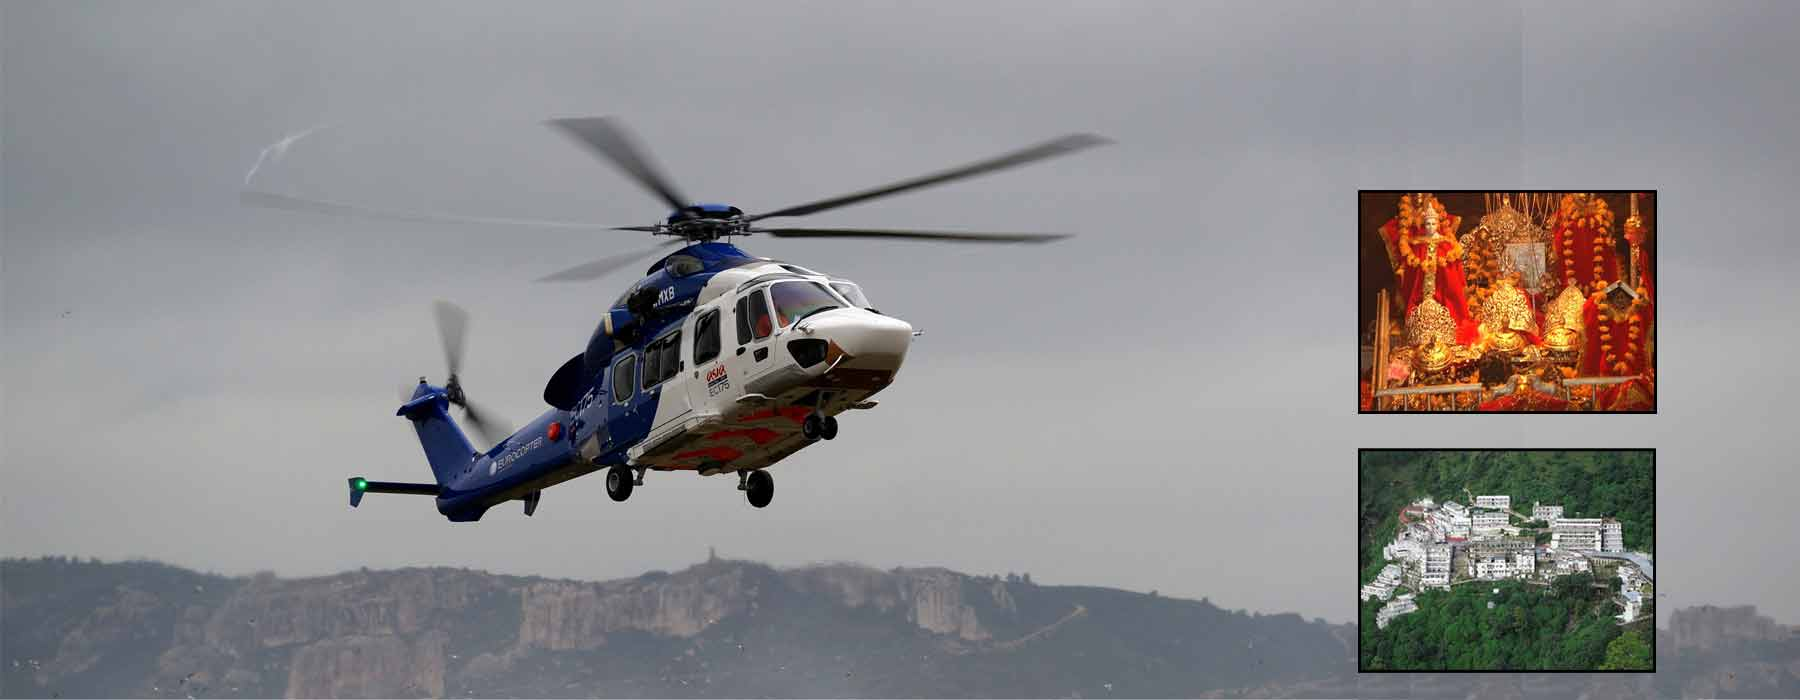 vaishno-devi-helicopter-booking